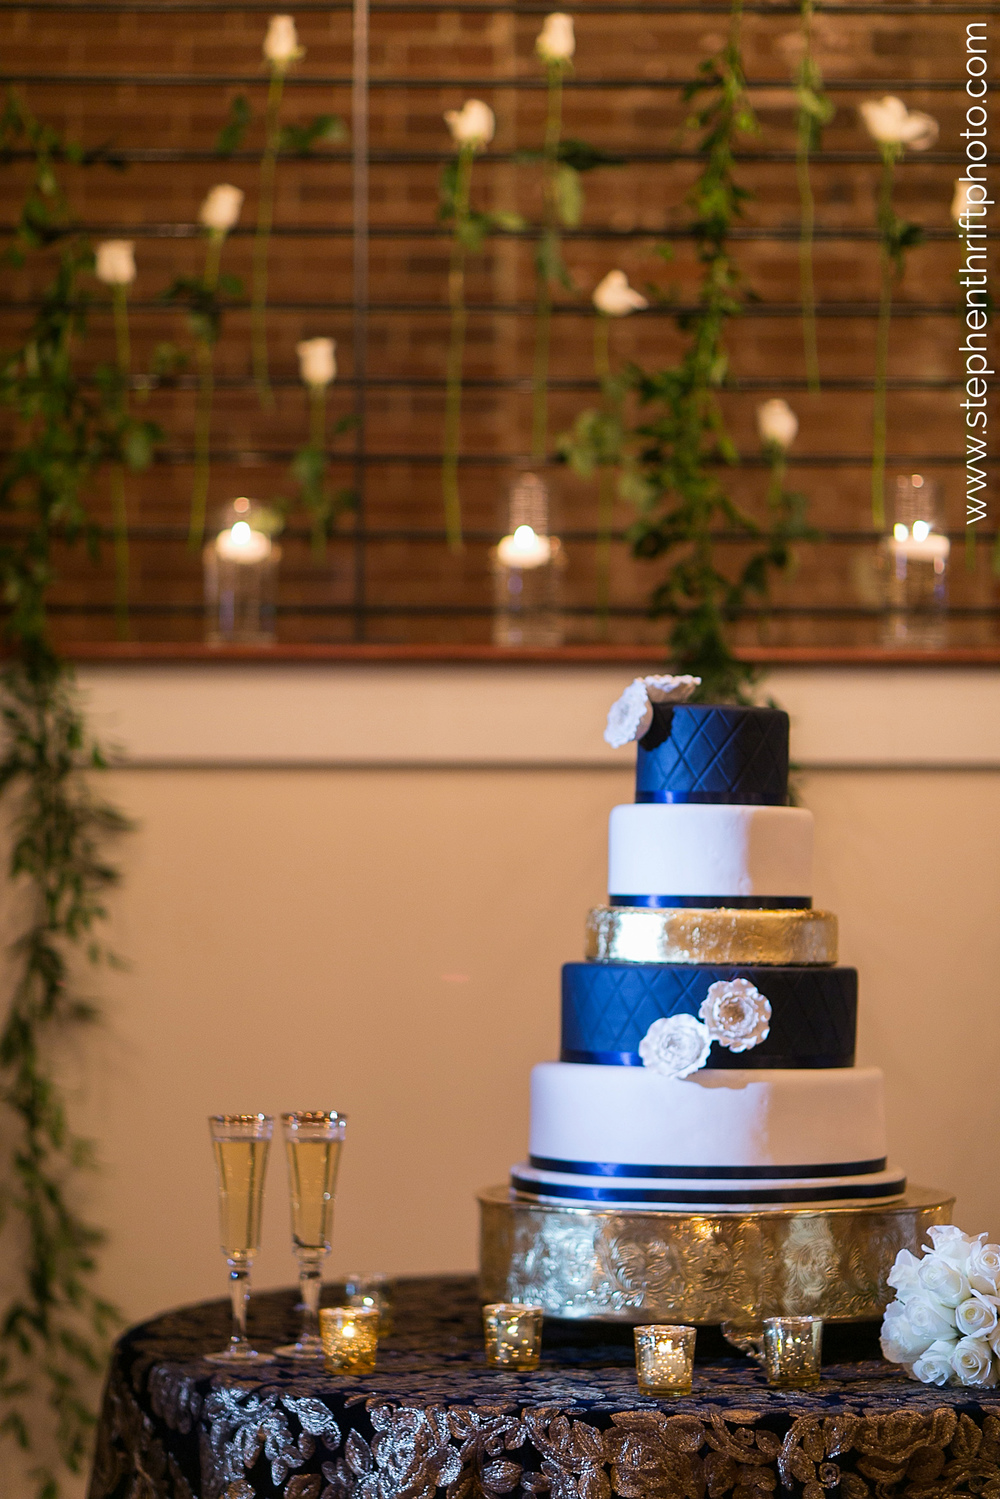 Blue and White | Edible Art Bakery of Raleigh